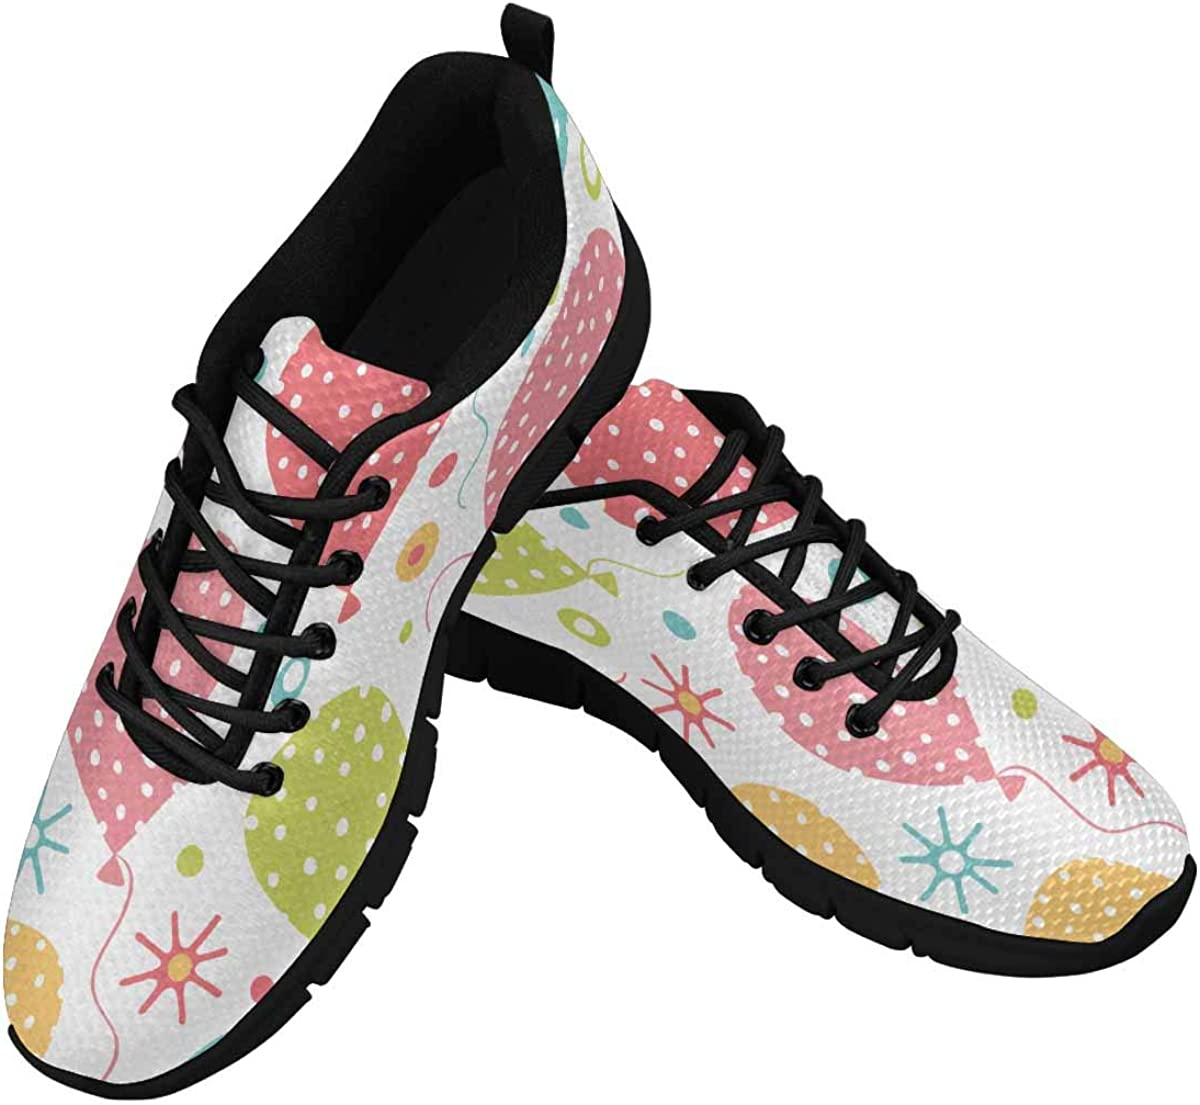 InterestPrint Retro Background with Party Balloons Women's Athletic Walking Shoes Casual Mesh Comfortable Work Sneakers